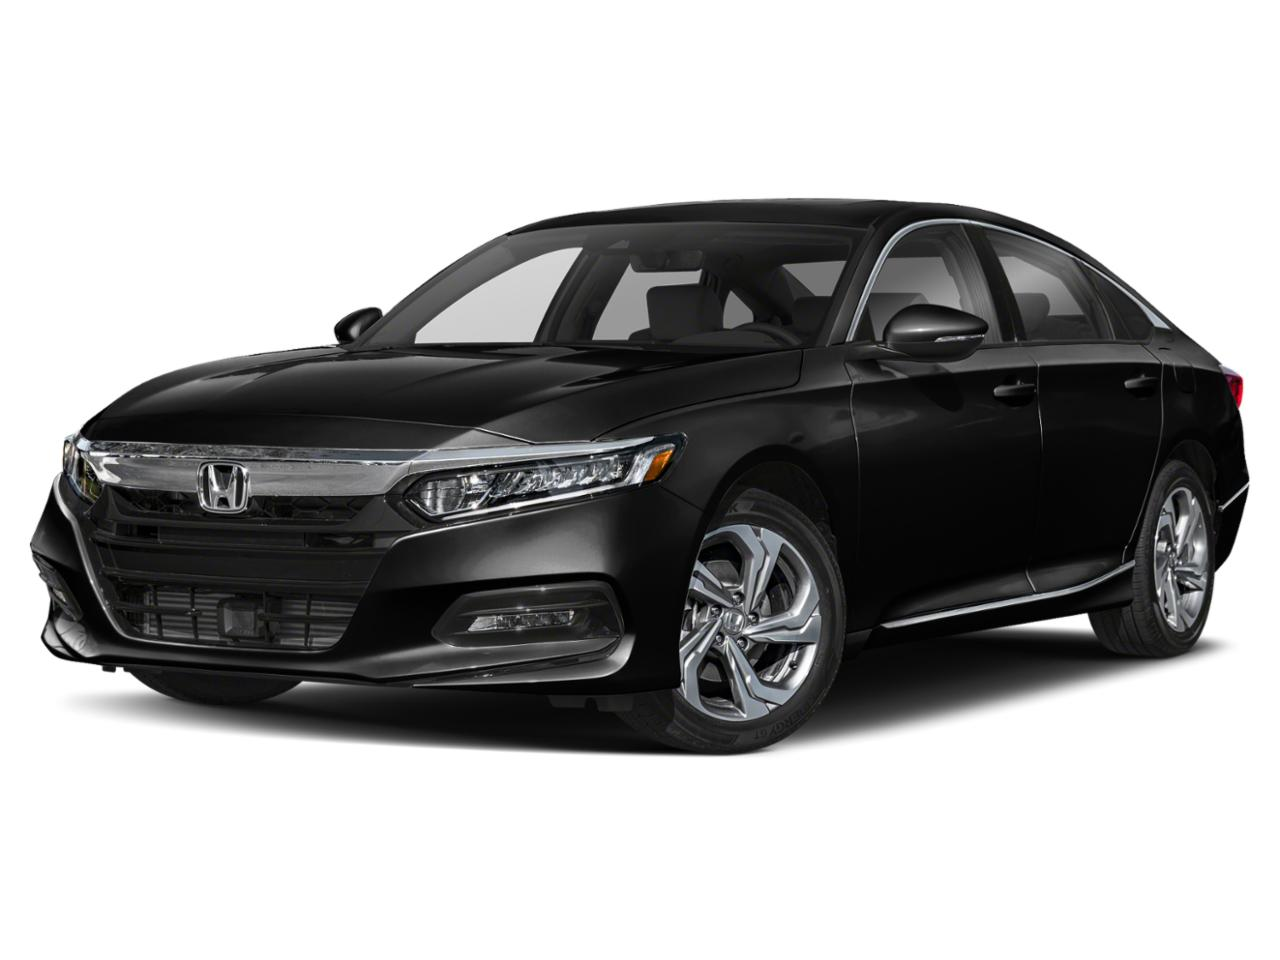 2020 Honda Accord Sedan Vehicle Photo in Emporia, VA 23847